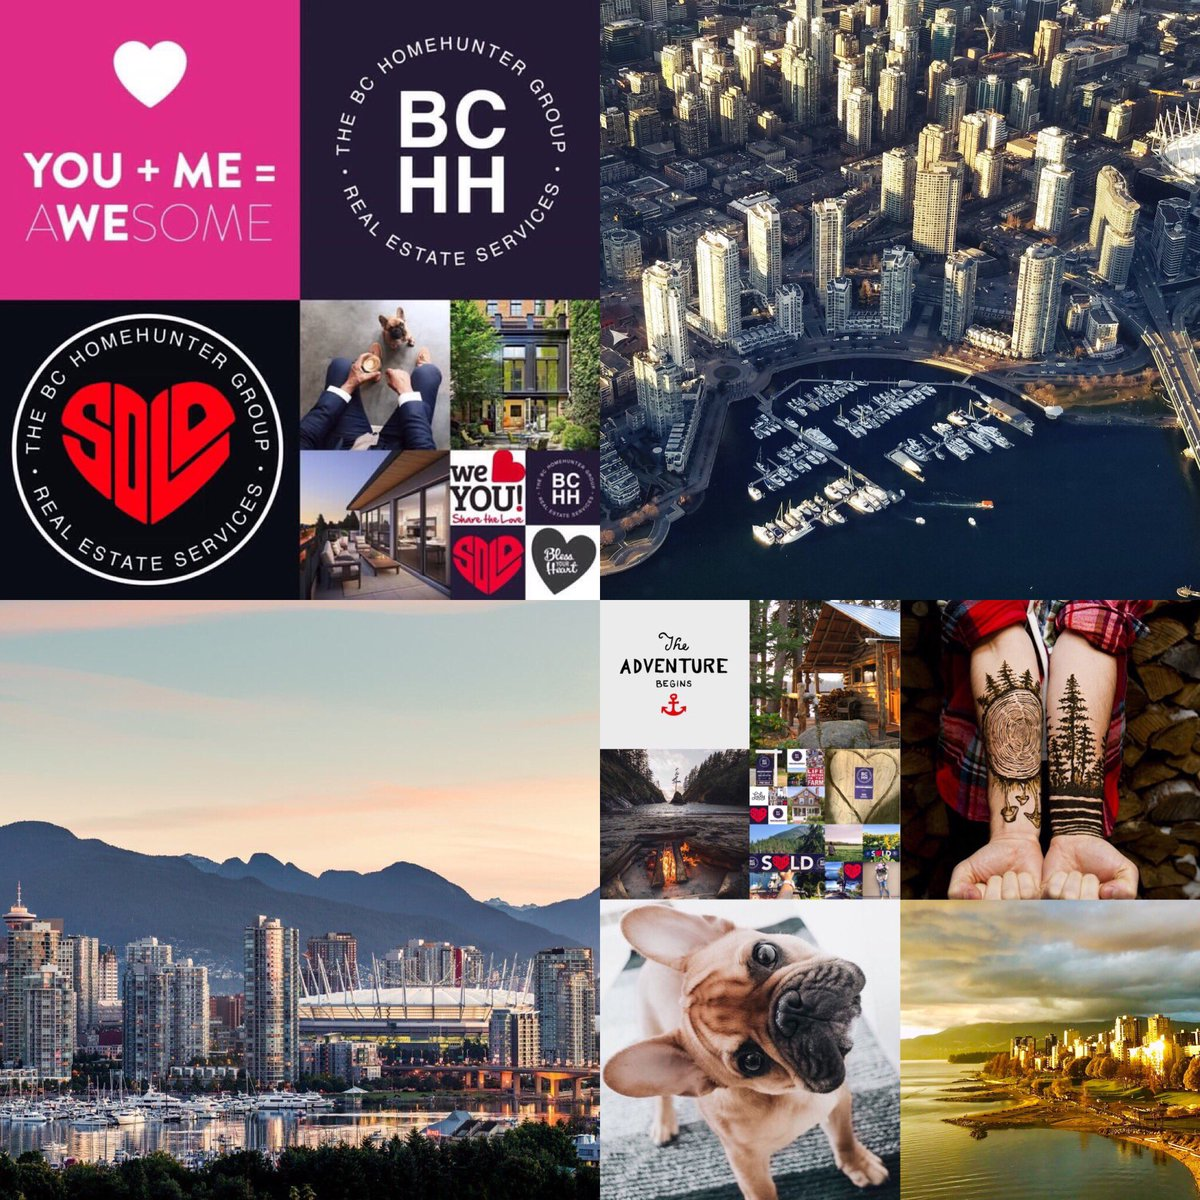 THE #BC HOME HUNTER GROUP Big thank you to our wonderful clients Liza & Ross for your thoughtful #Yaletown condo referral, see you two tomorrow! #VancouverHomeHunter #Vancouver #CoalHarbour #Kitsilano #Kerrisdale #Dunbar #EastVan #Gastown #Oakridge #Marpole #Cambie #BCHomeHunter